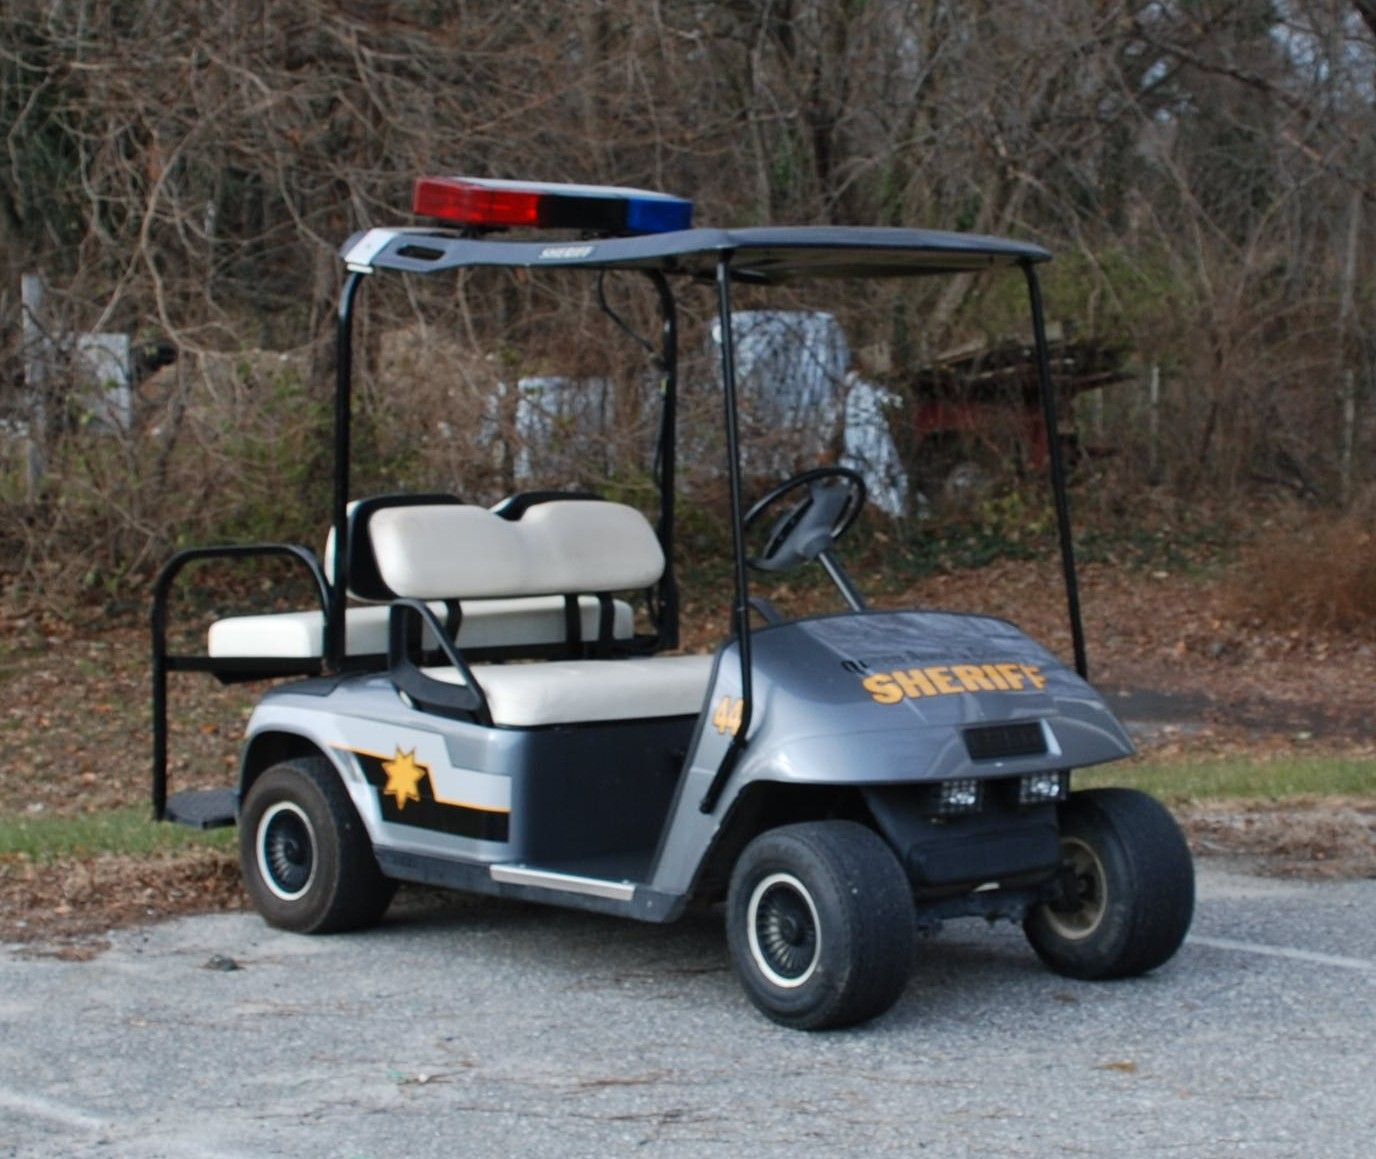 (9) QACSO GOLF CART Golf carts, Cart, Used cars